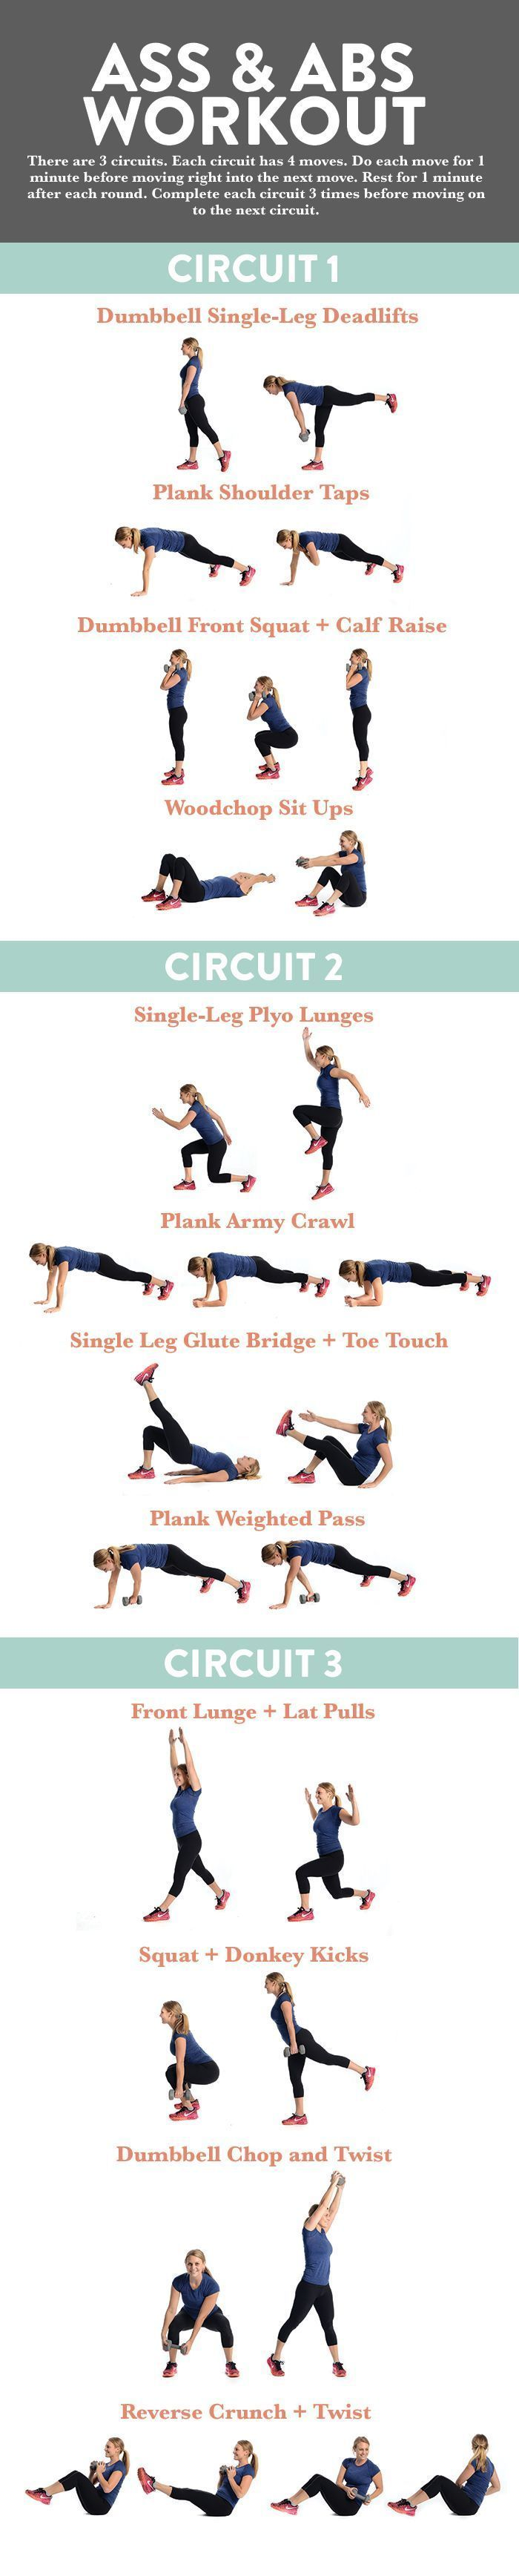 This 45-Minute Ass and Abs Workout will work both your core and booty. It mixes strength moves with plyometrics for the ultimate burn!